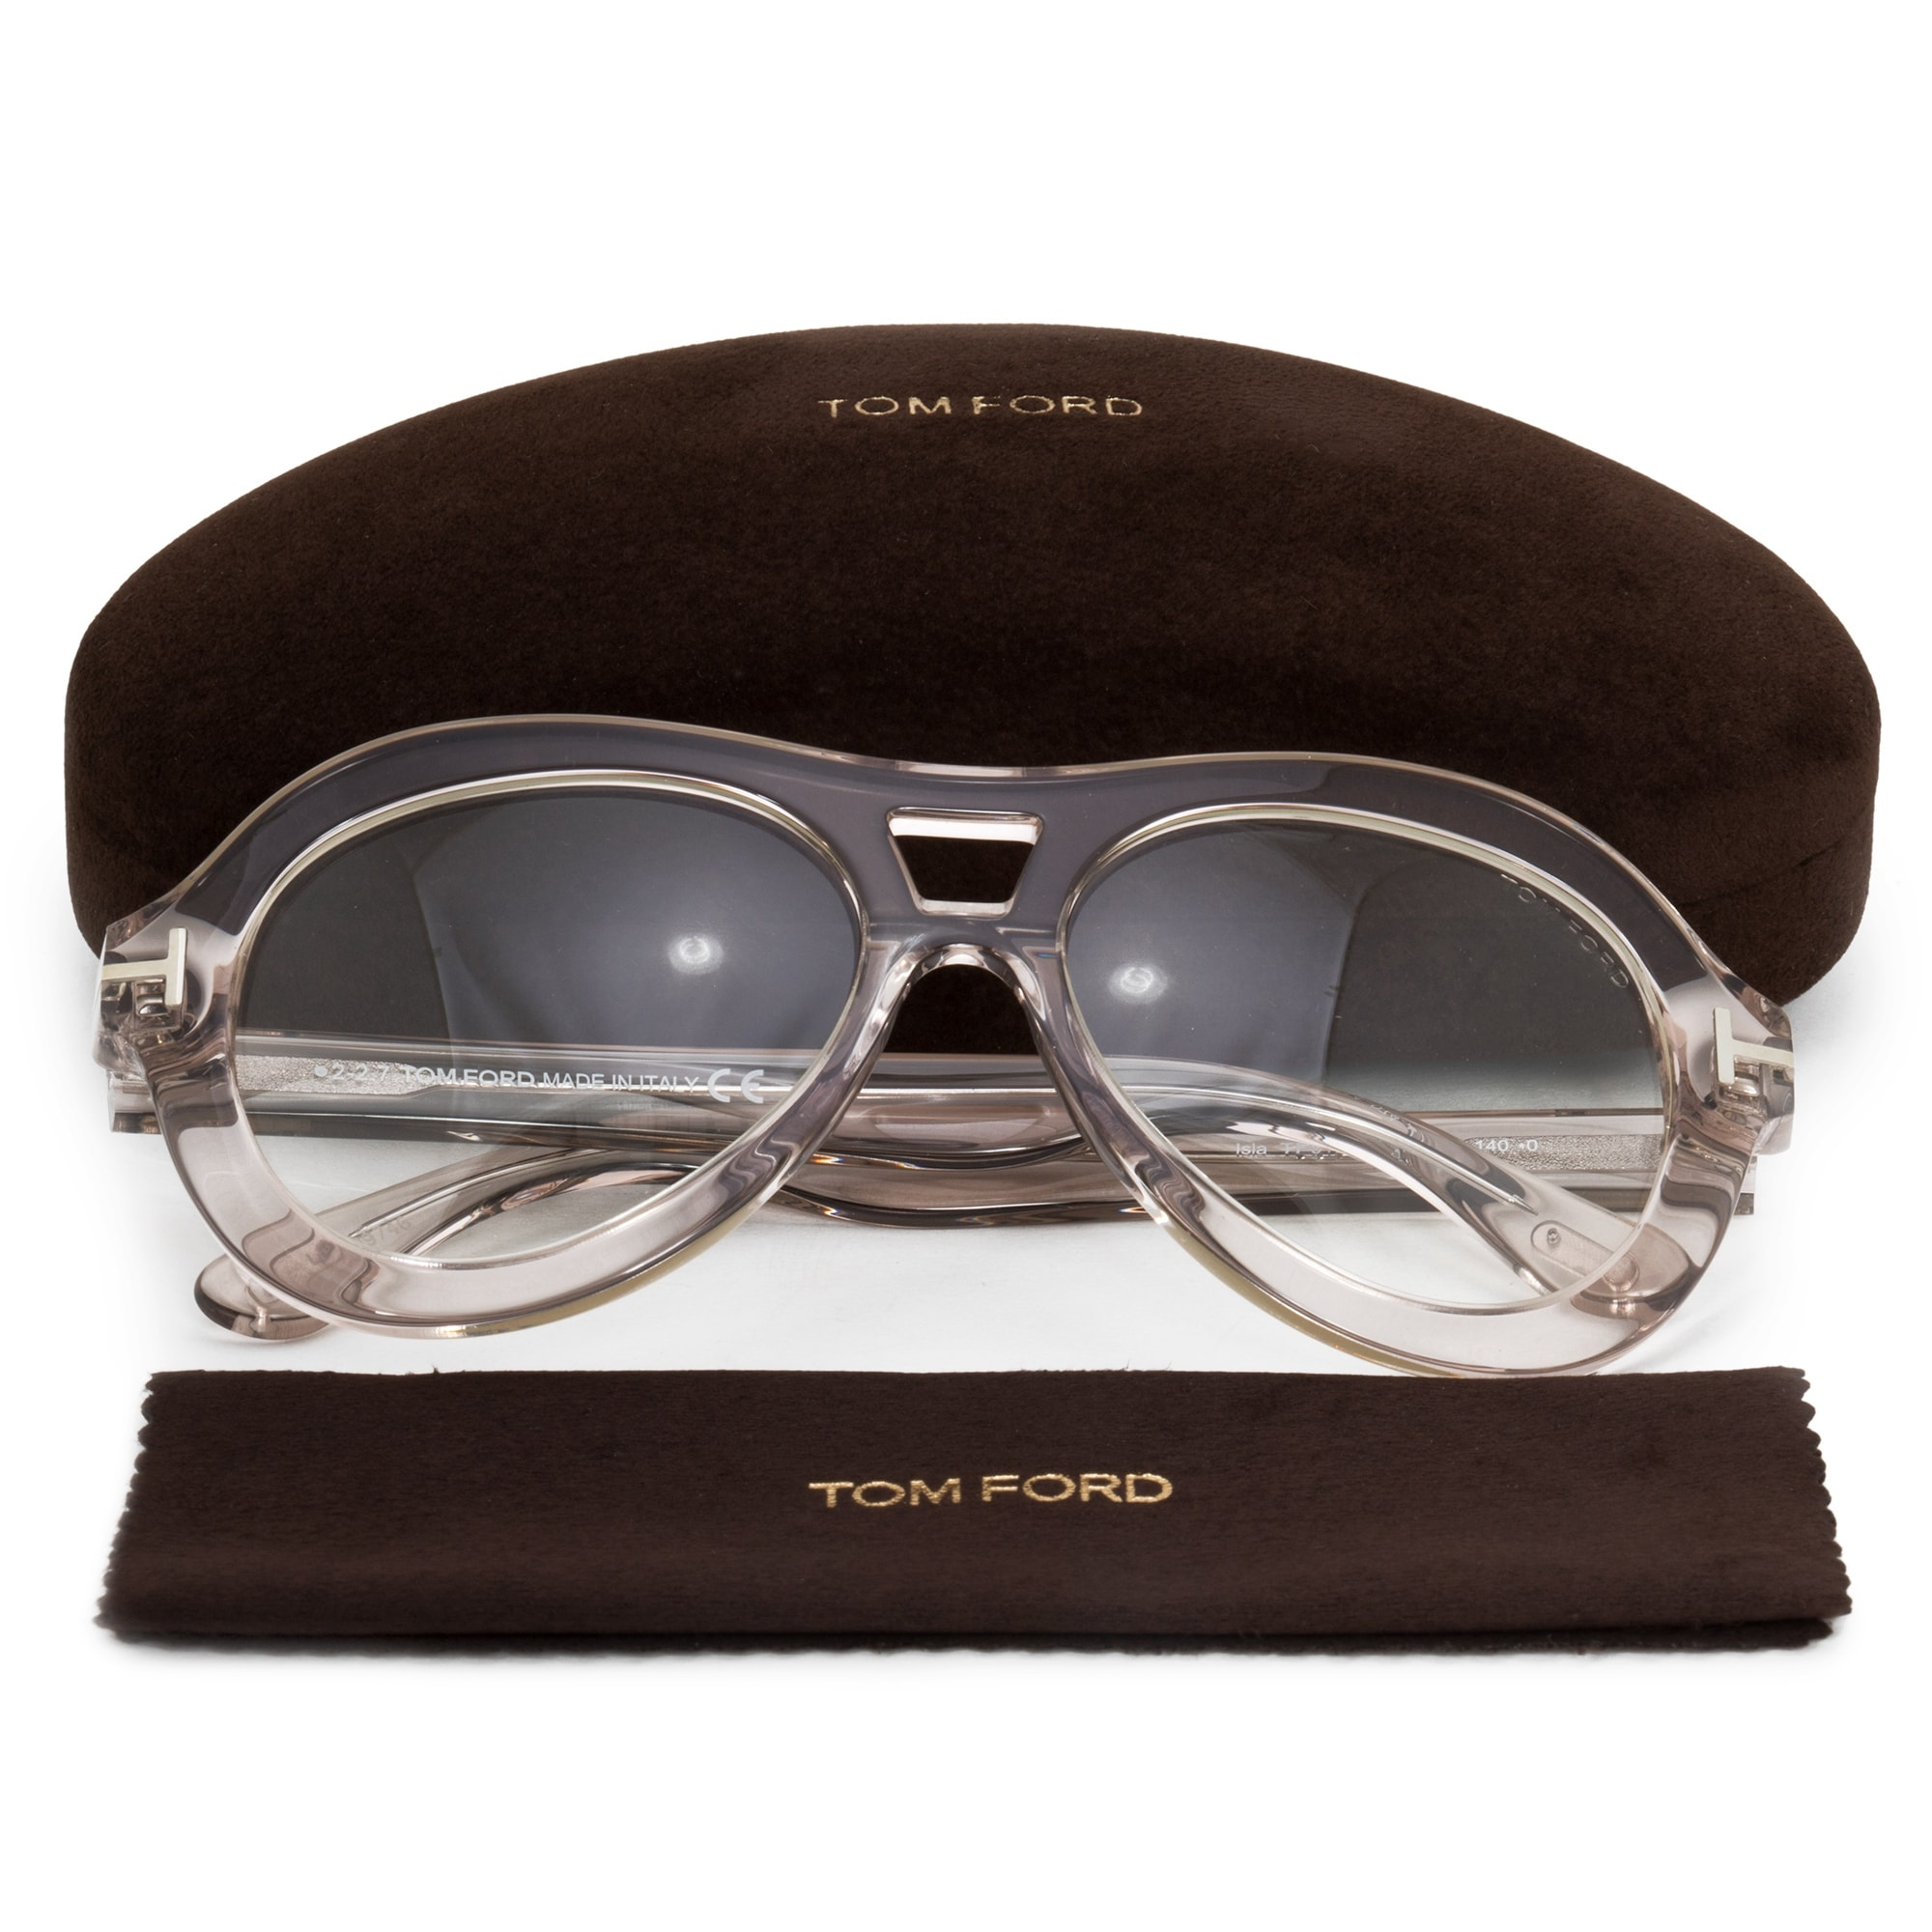 68a572be972 Shop Tom Ford Isla Round Sunglasses FT0514 074 56 - Free Shipping Today -  Overstock - 21408698